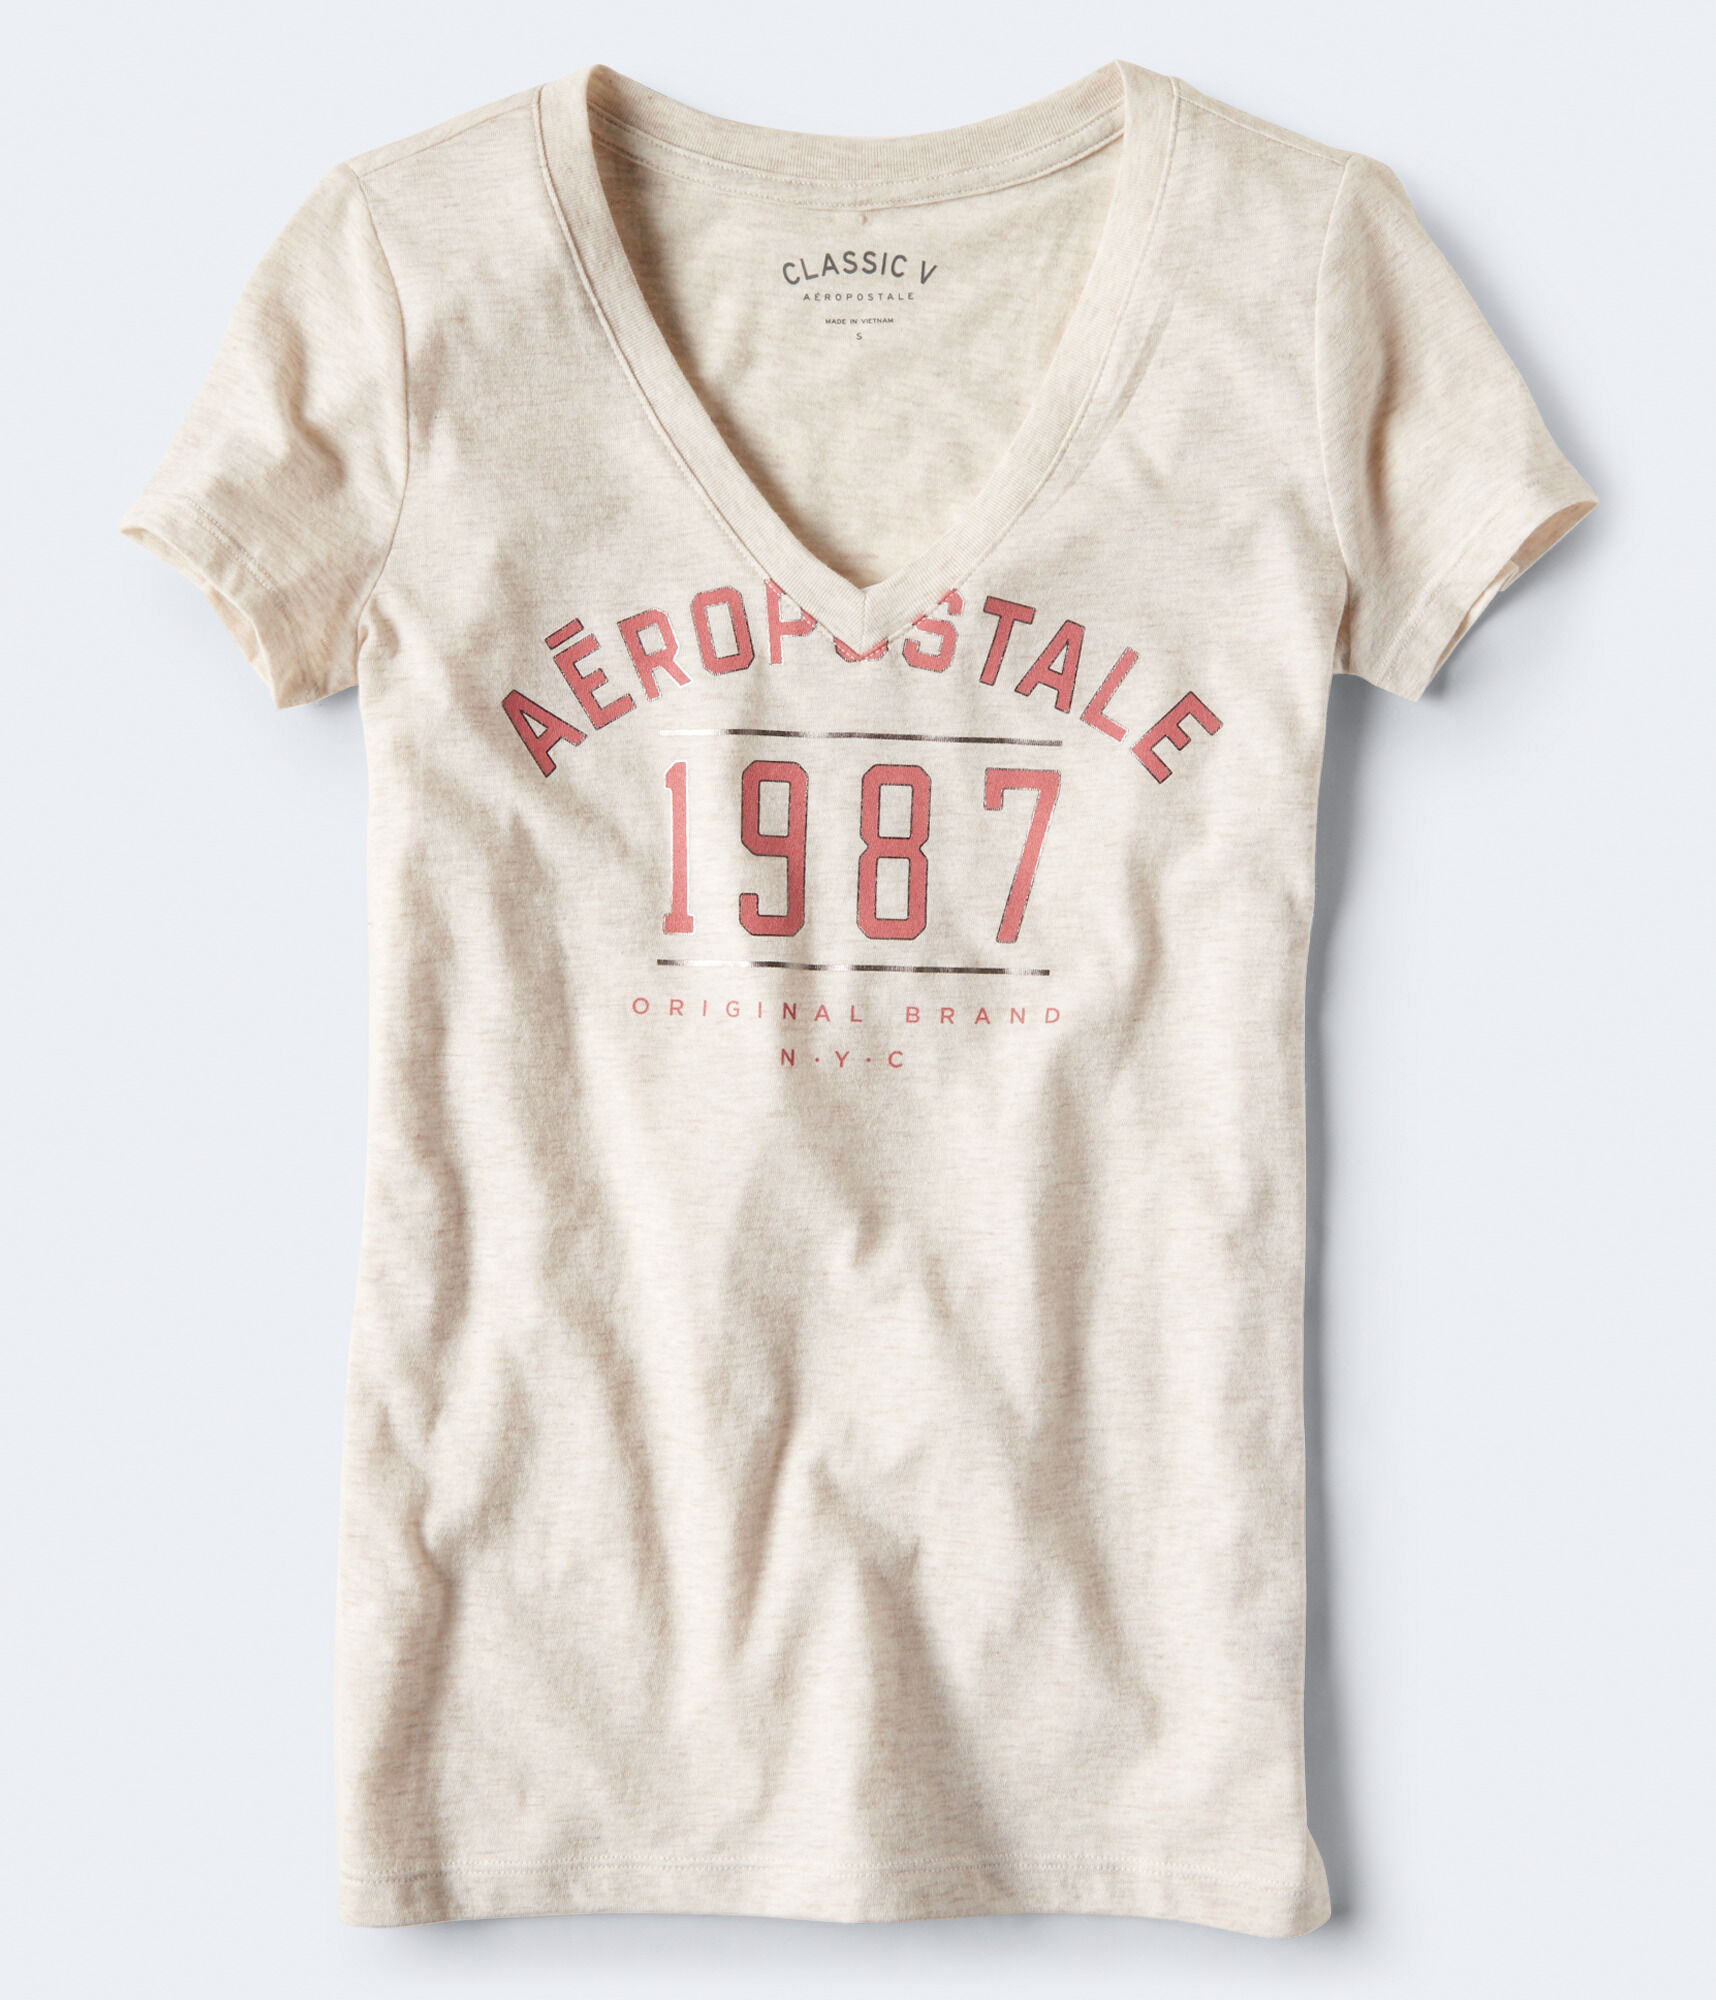 694d2b6df8db Aeropostale Original Brand V-Neck Graphic Tee